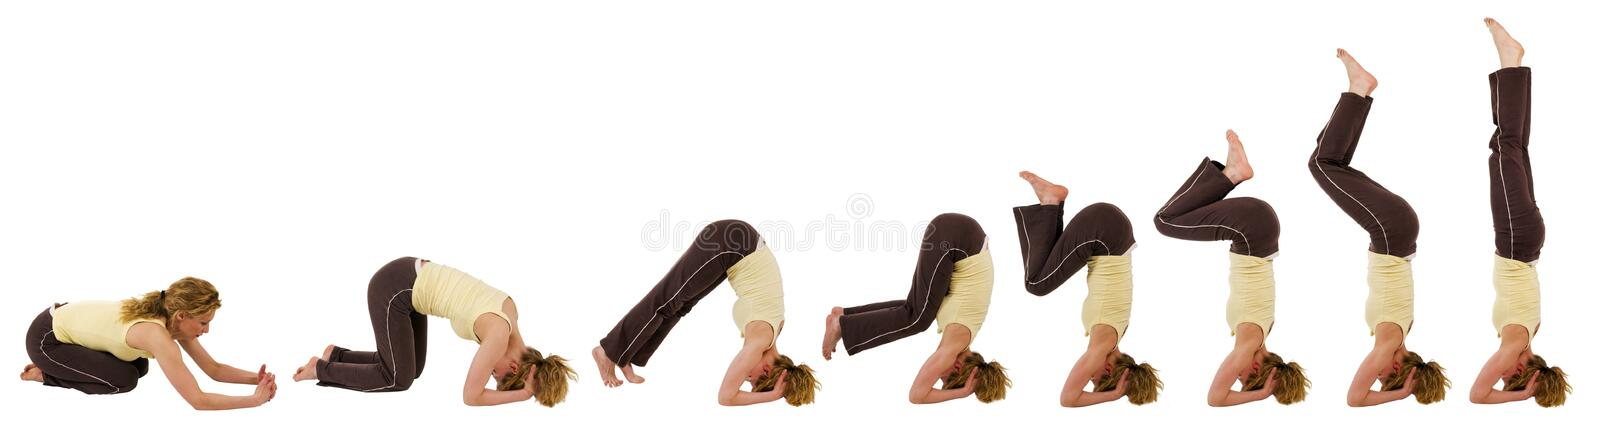 Headstand_sequence foto de stock royalty free